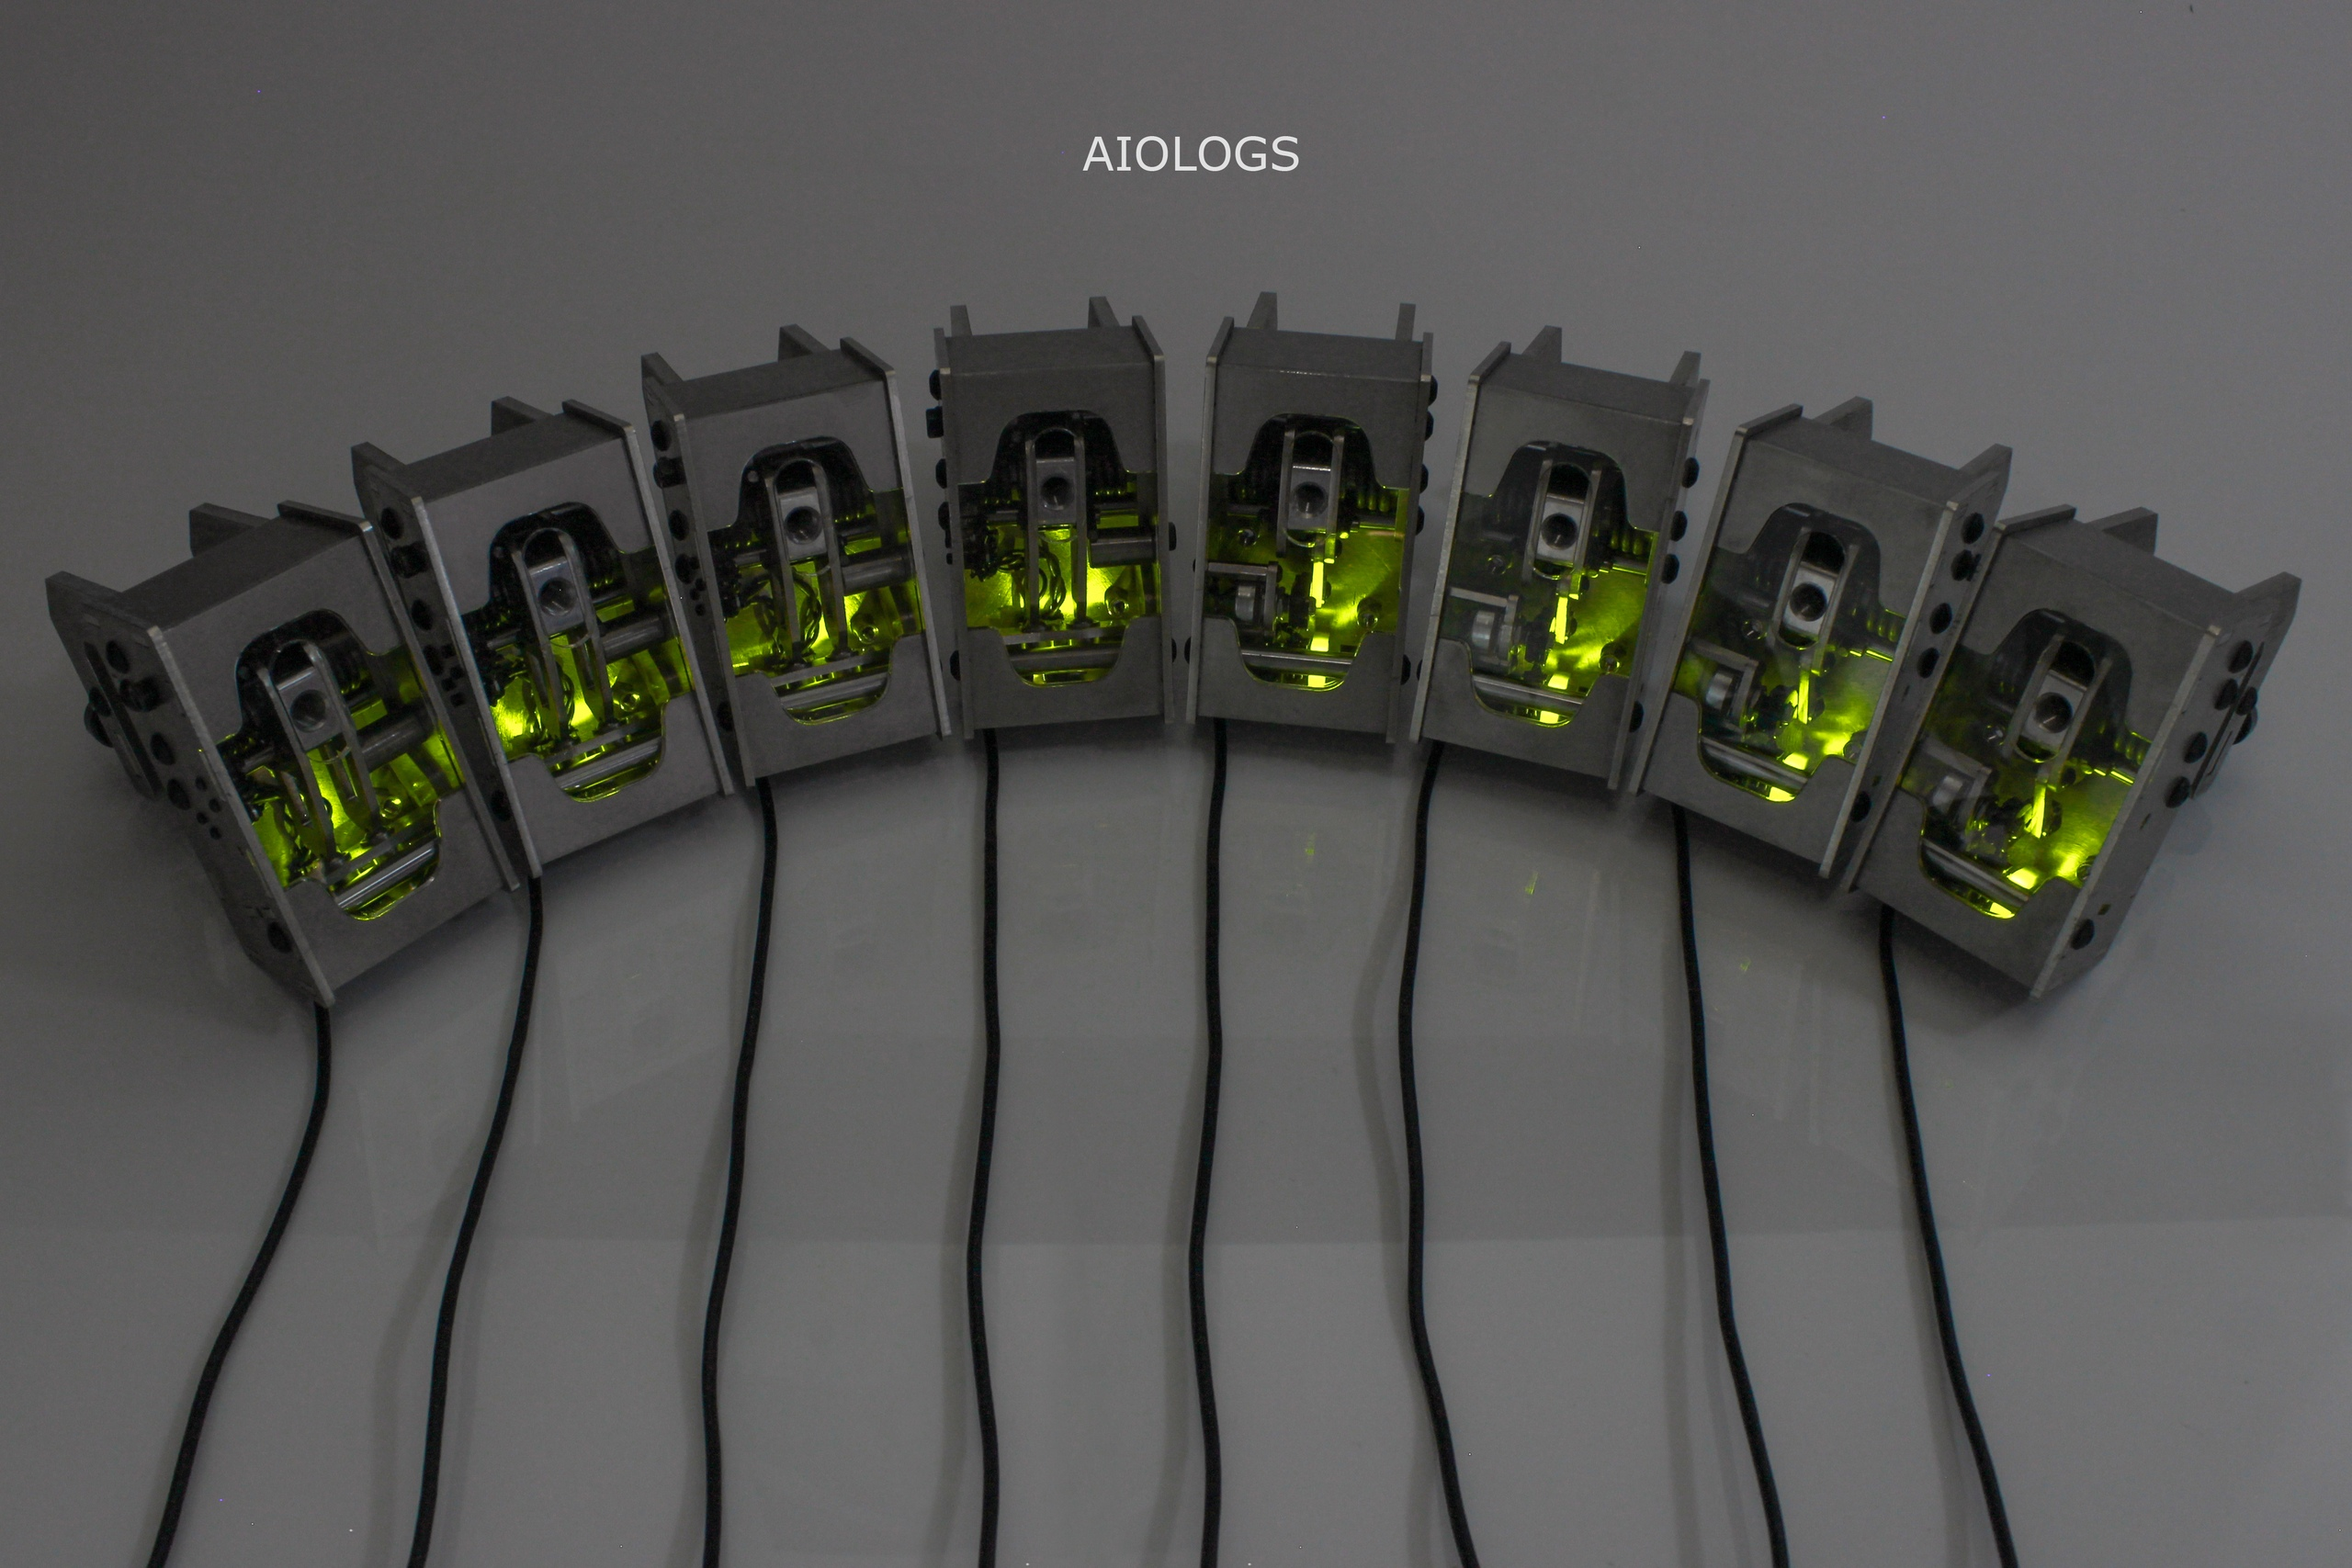 Aiologs Sim Handbrake and Shifter Sequential - General